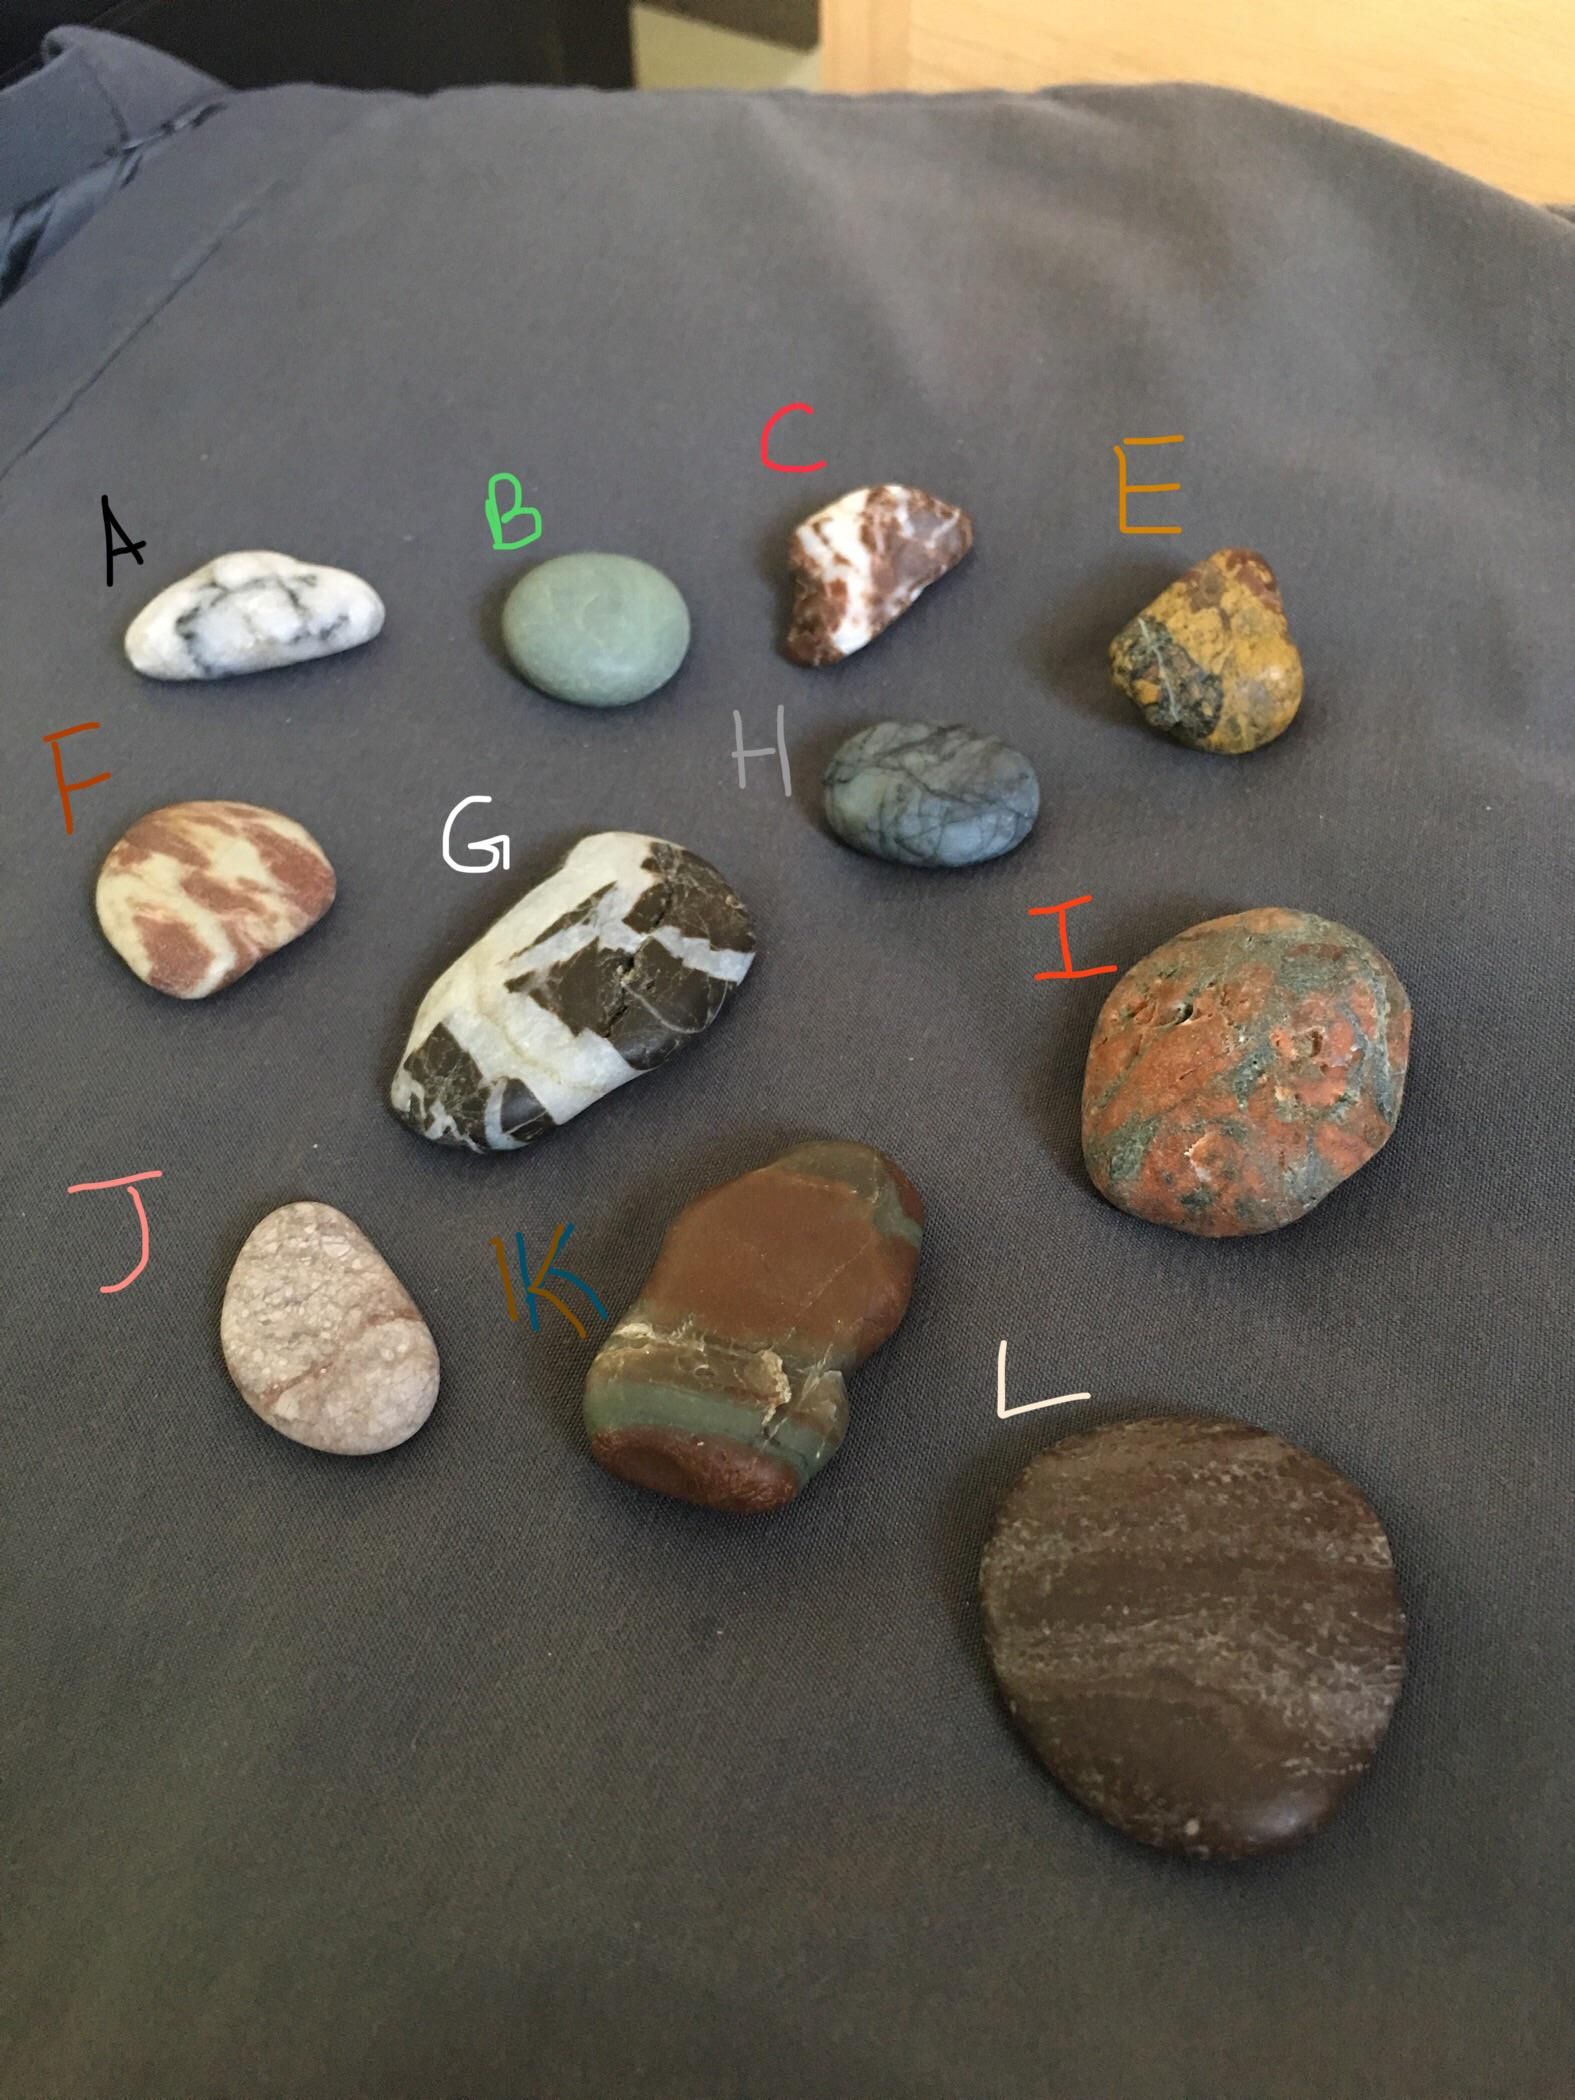 How To Identify Moonstone : identify, moonstone, Anyone, Rocks, Found, Moonstone, Beach?, Given, Curious., Geology